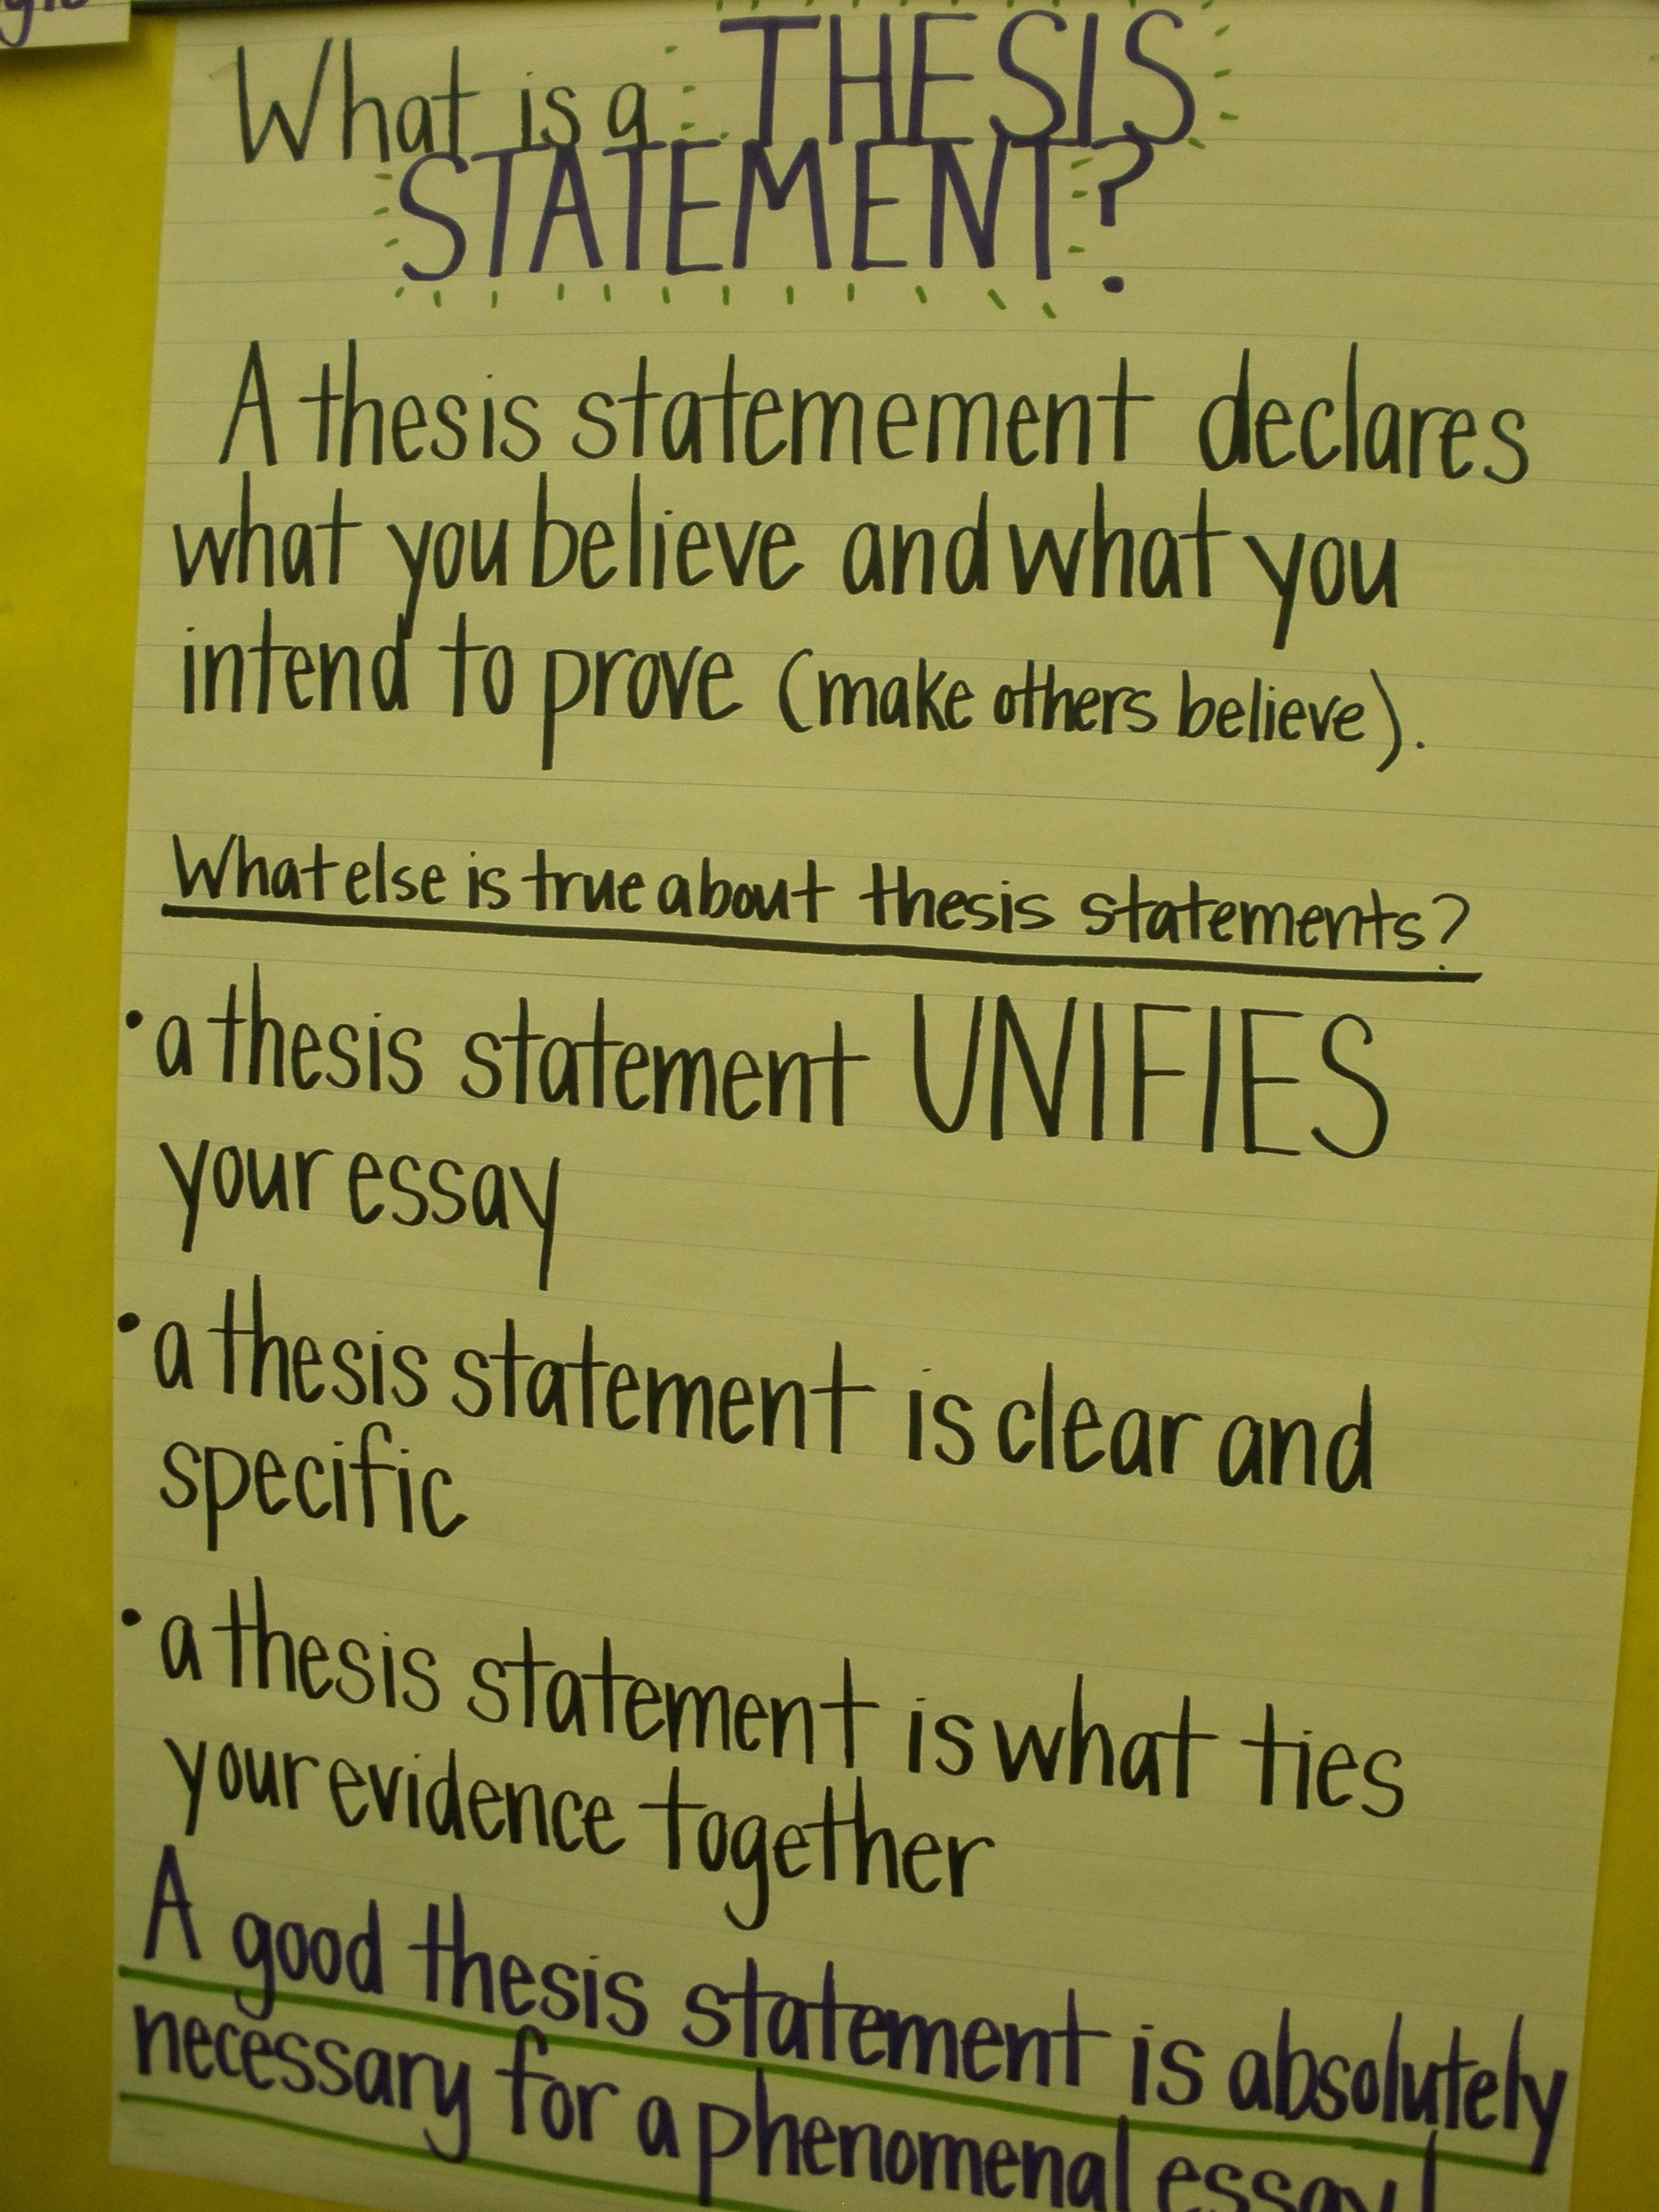 thesis statements anchor chart  definitely a good idea to have  thesis statements anchor chart  definitely a good idea to have something  like this hung up in the classroom